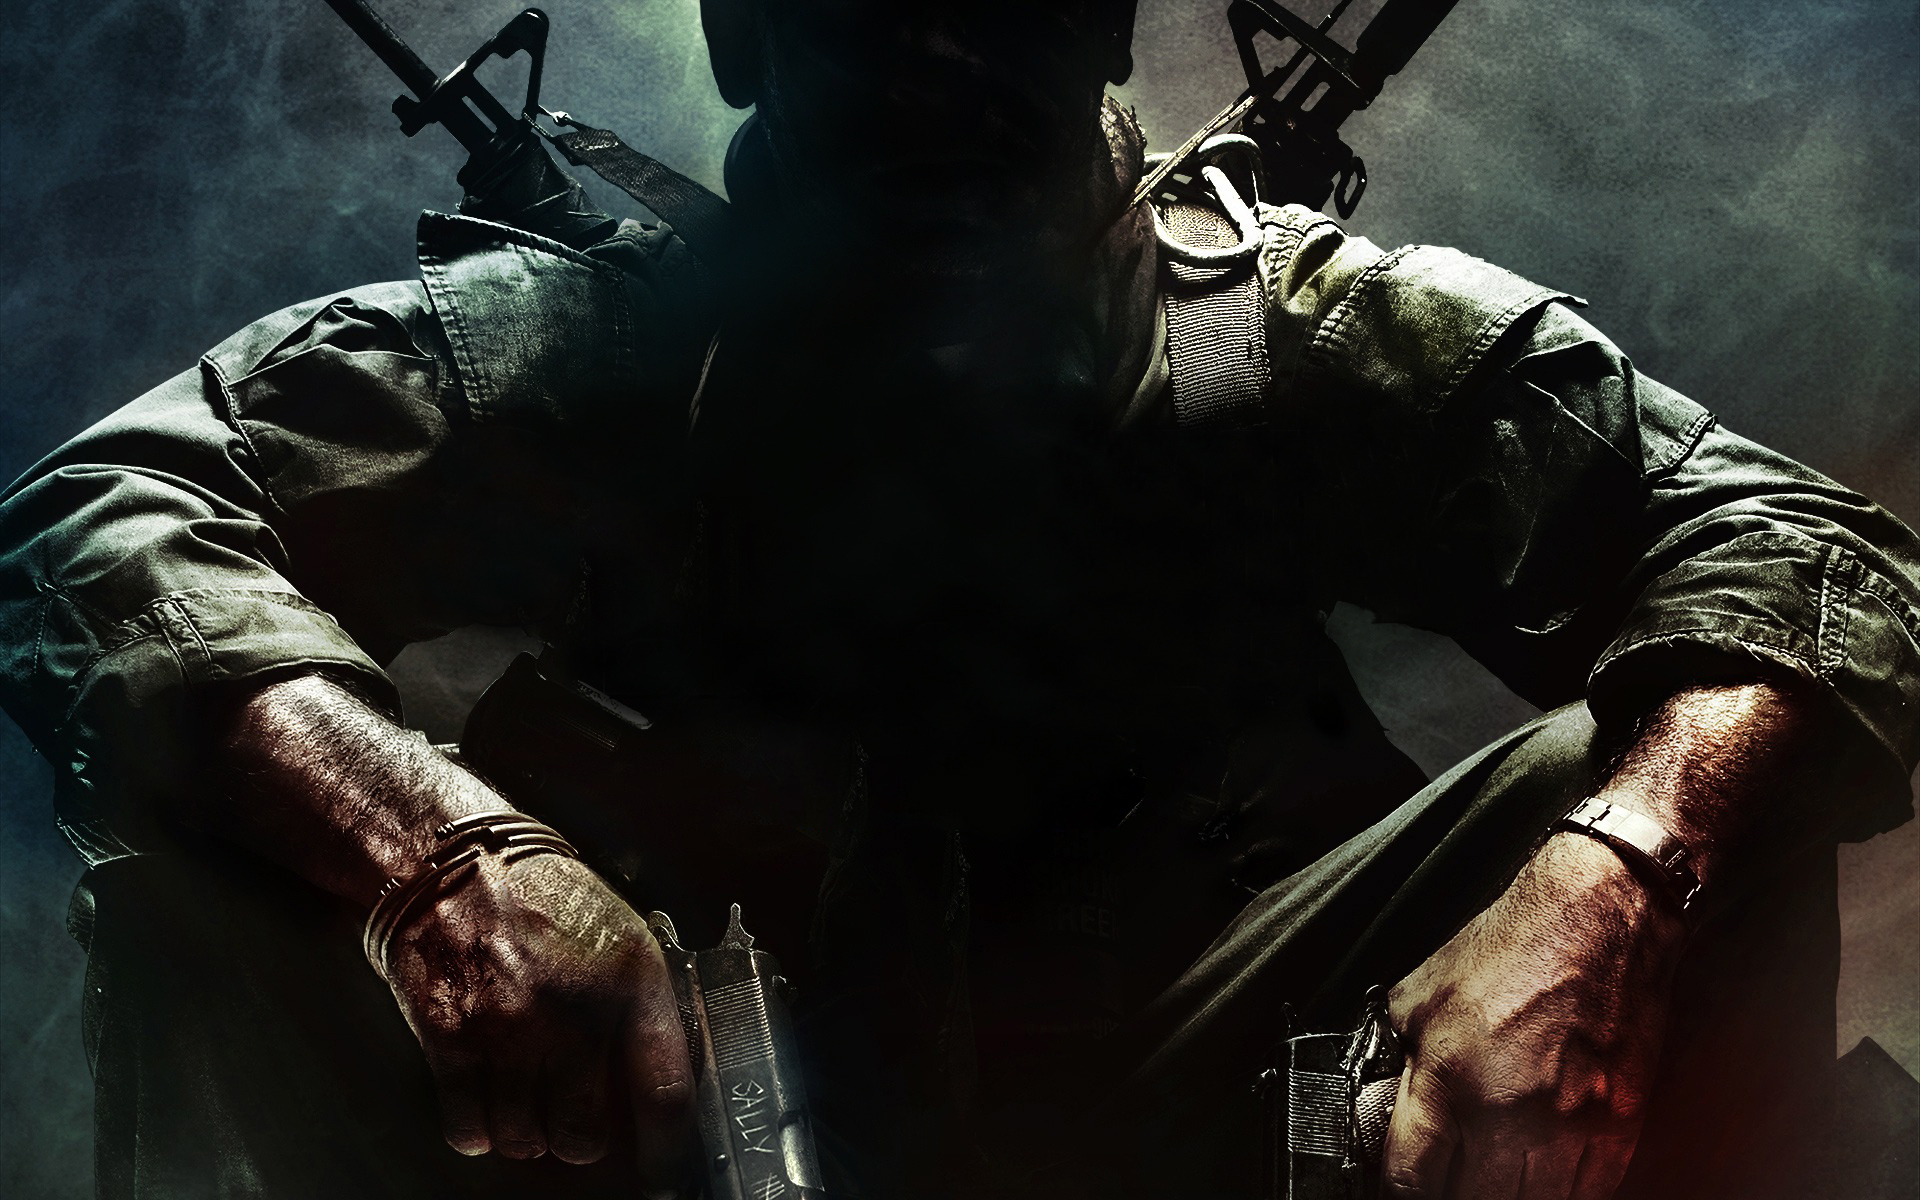 Call Of Duty Black Ops Full HD Wallpaper And Background Image